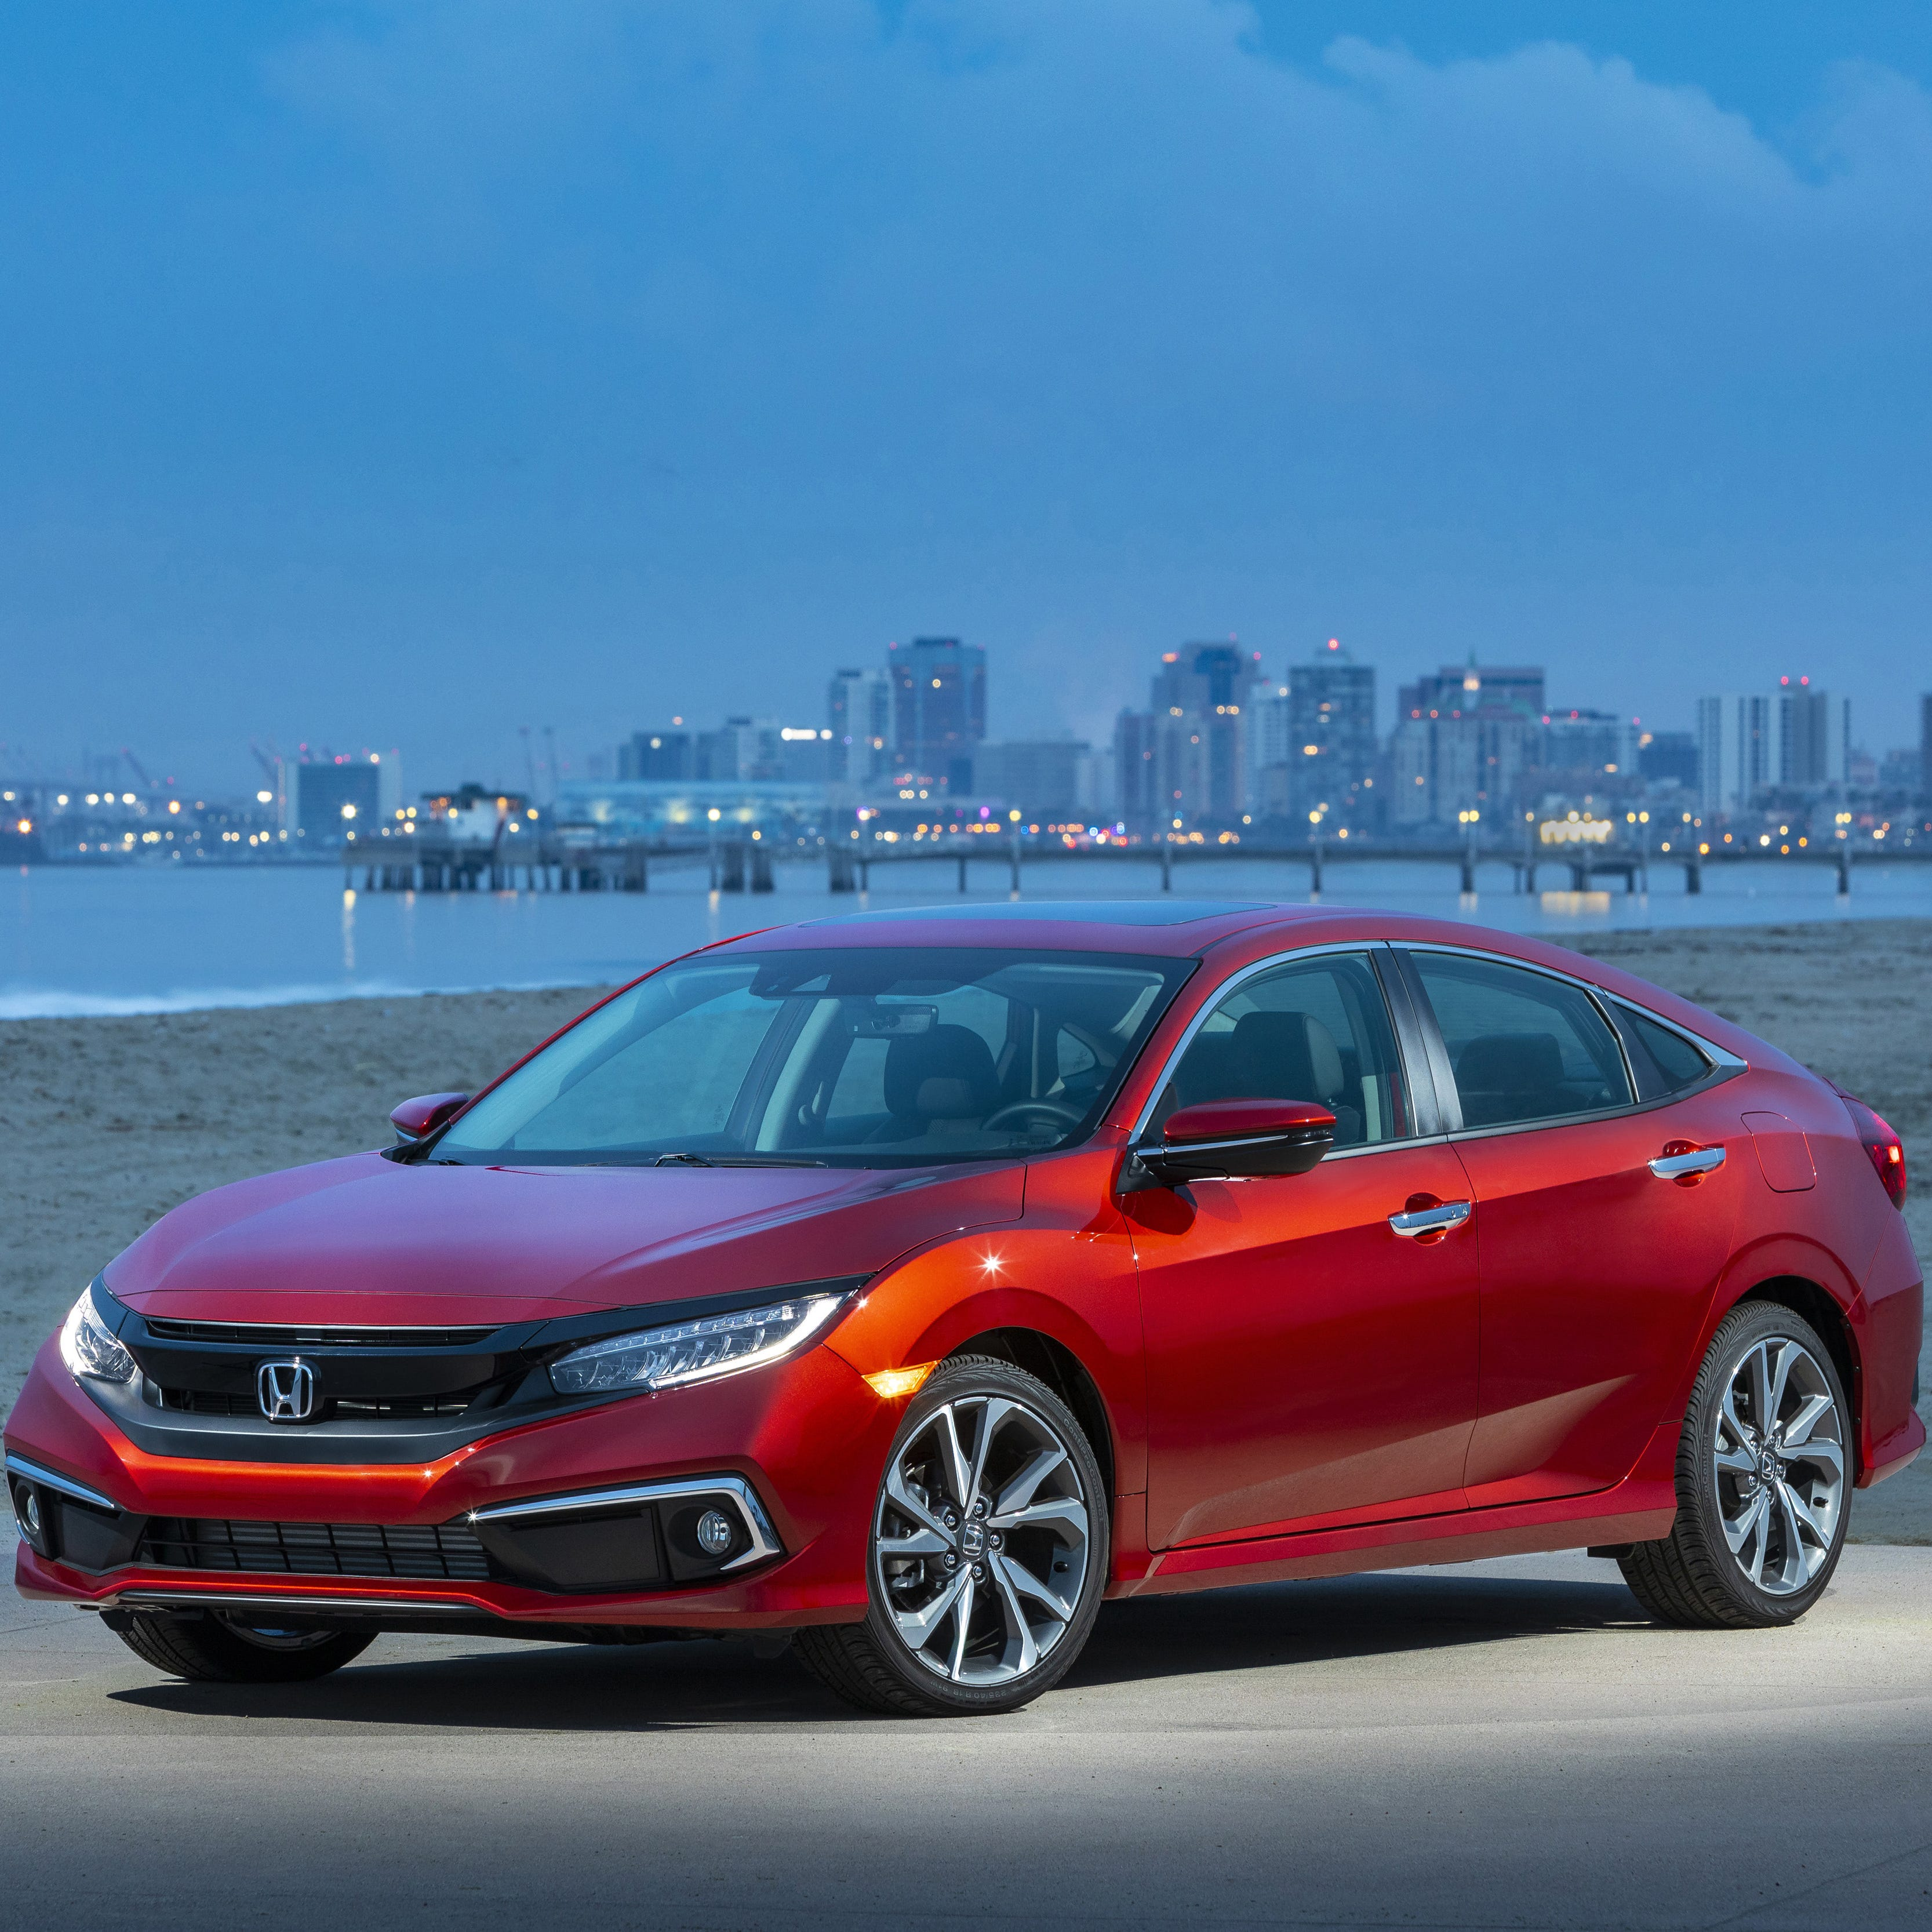 Honda has a reason to fight for sedans